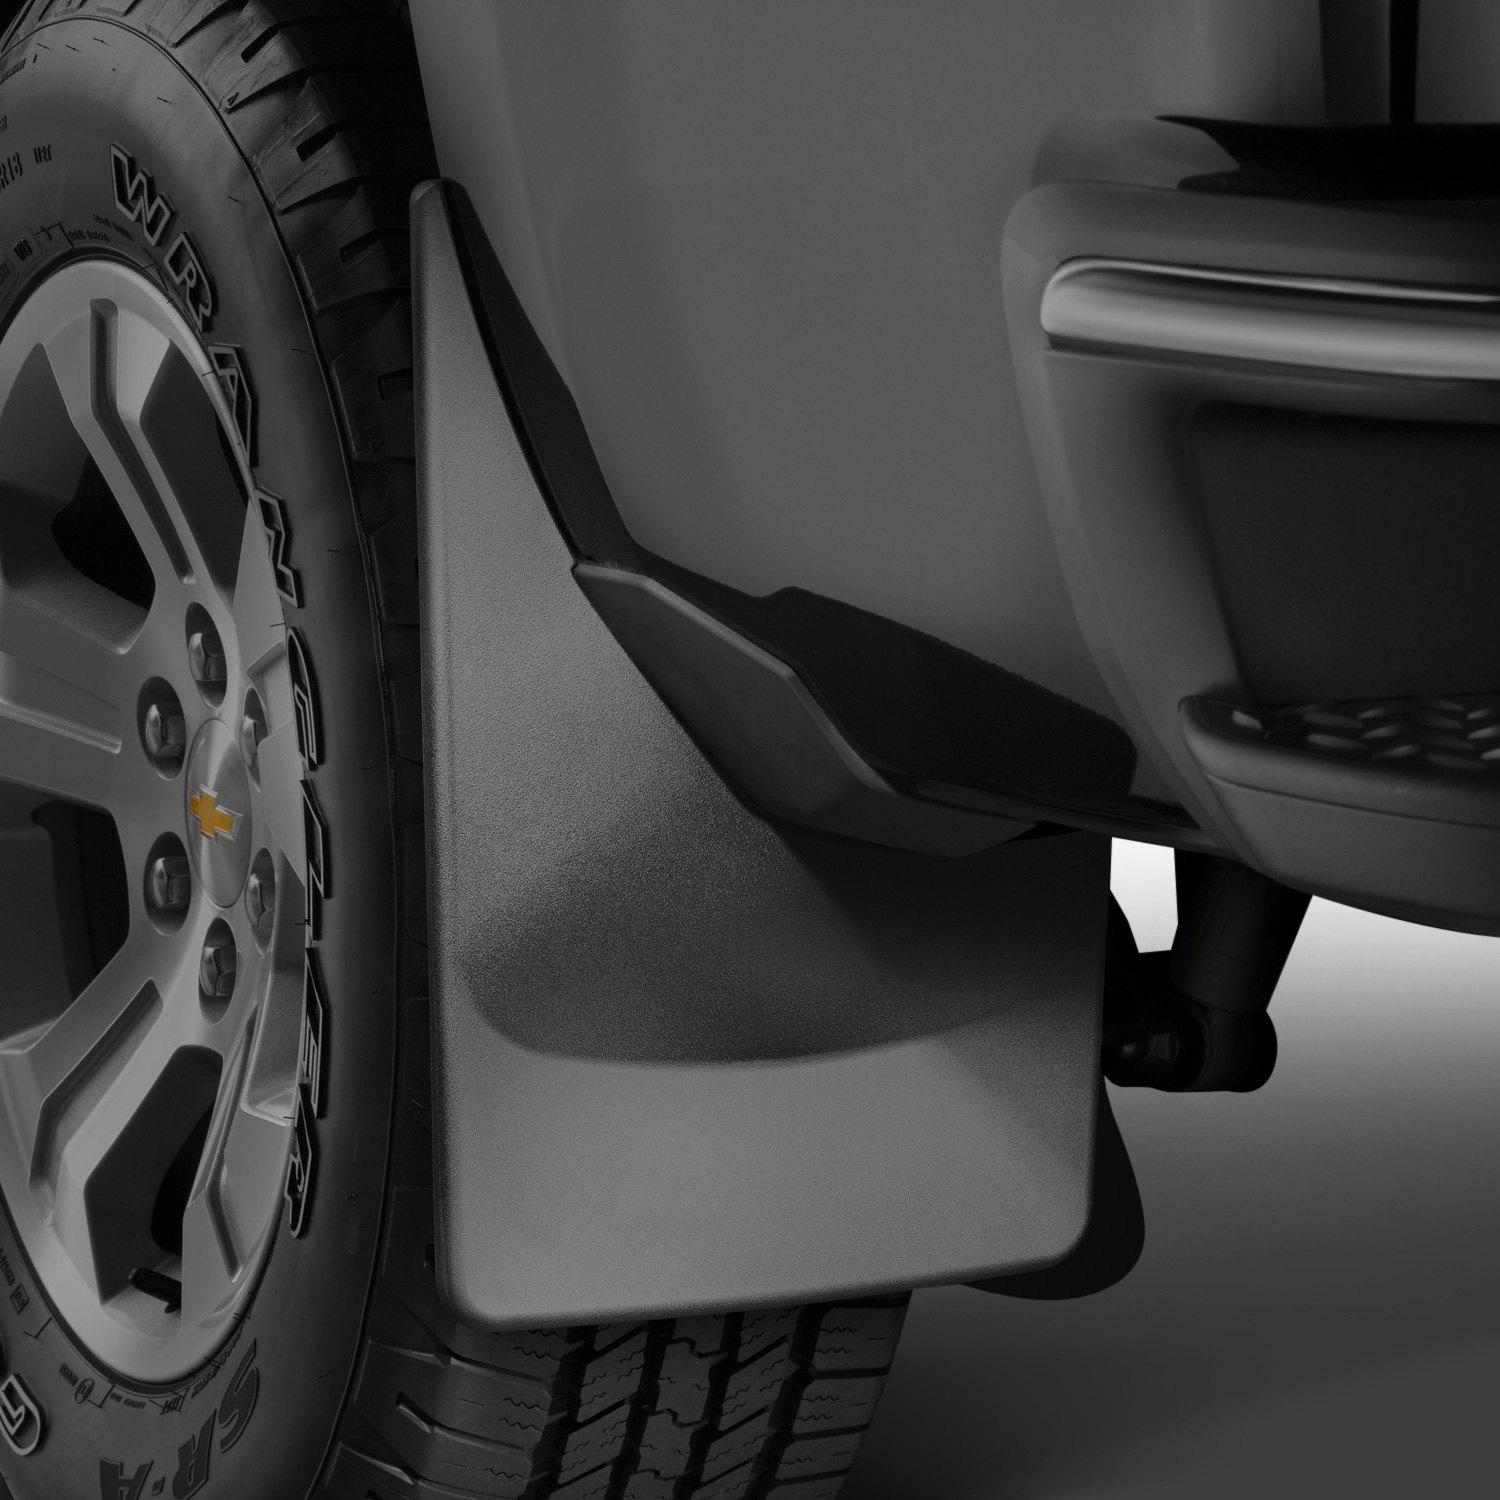 F350 Dually Wheels >> WeatherTech® - Ford F-150 2018 DigitalFit™ Black Mud Flaps